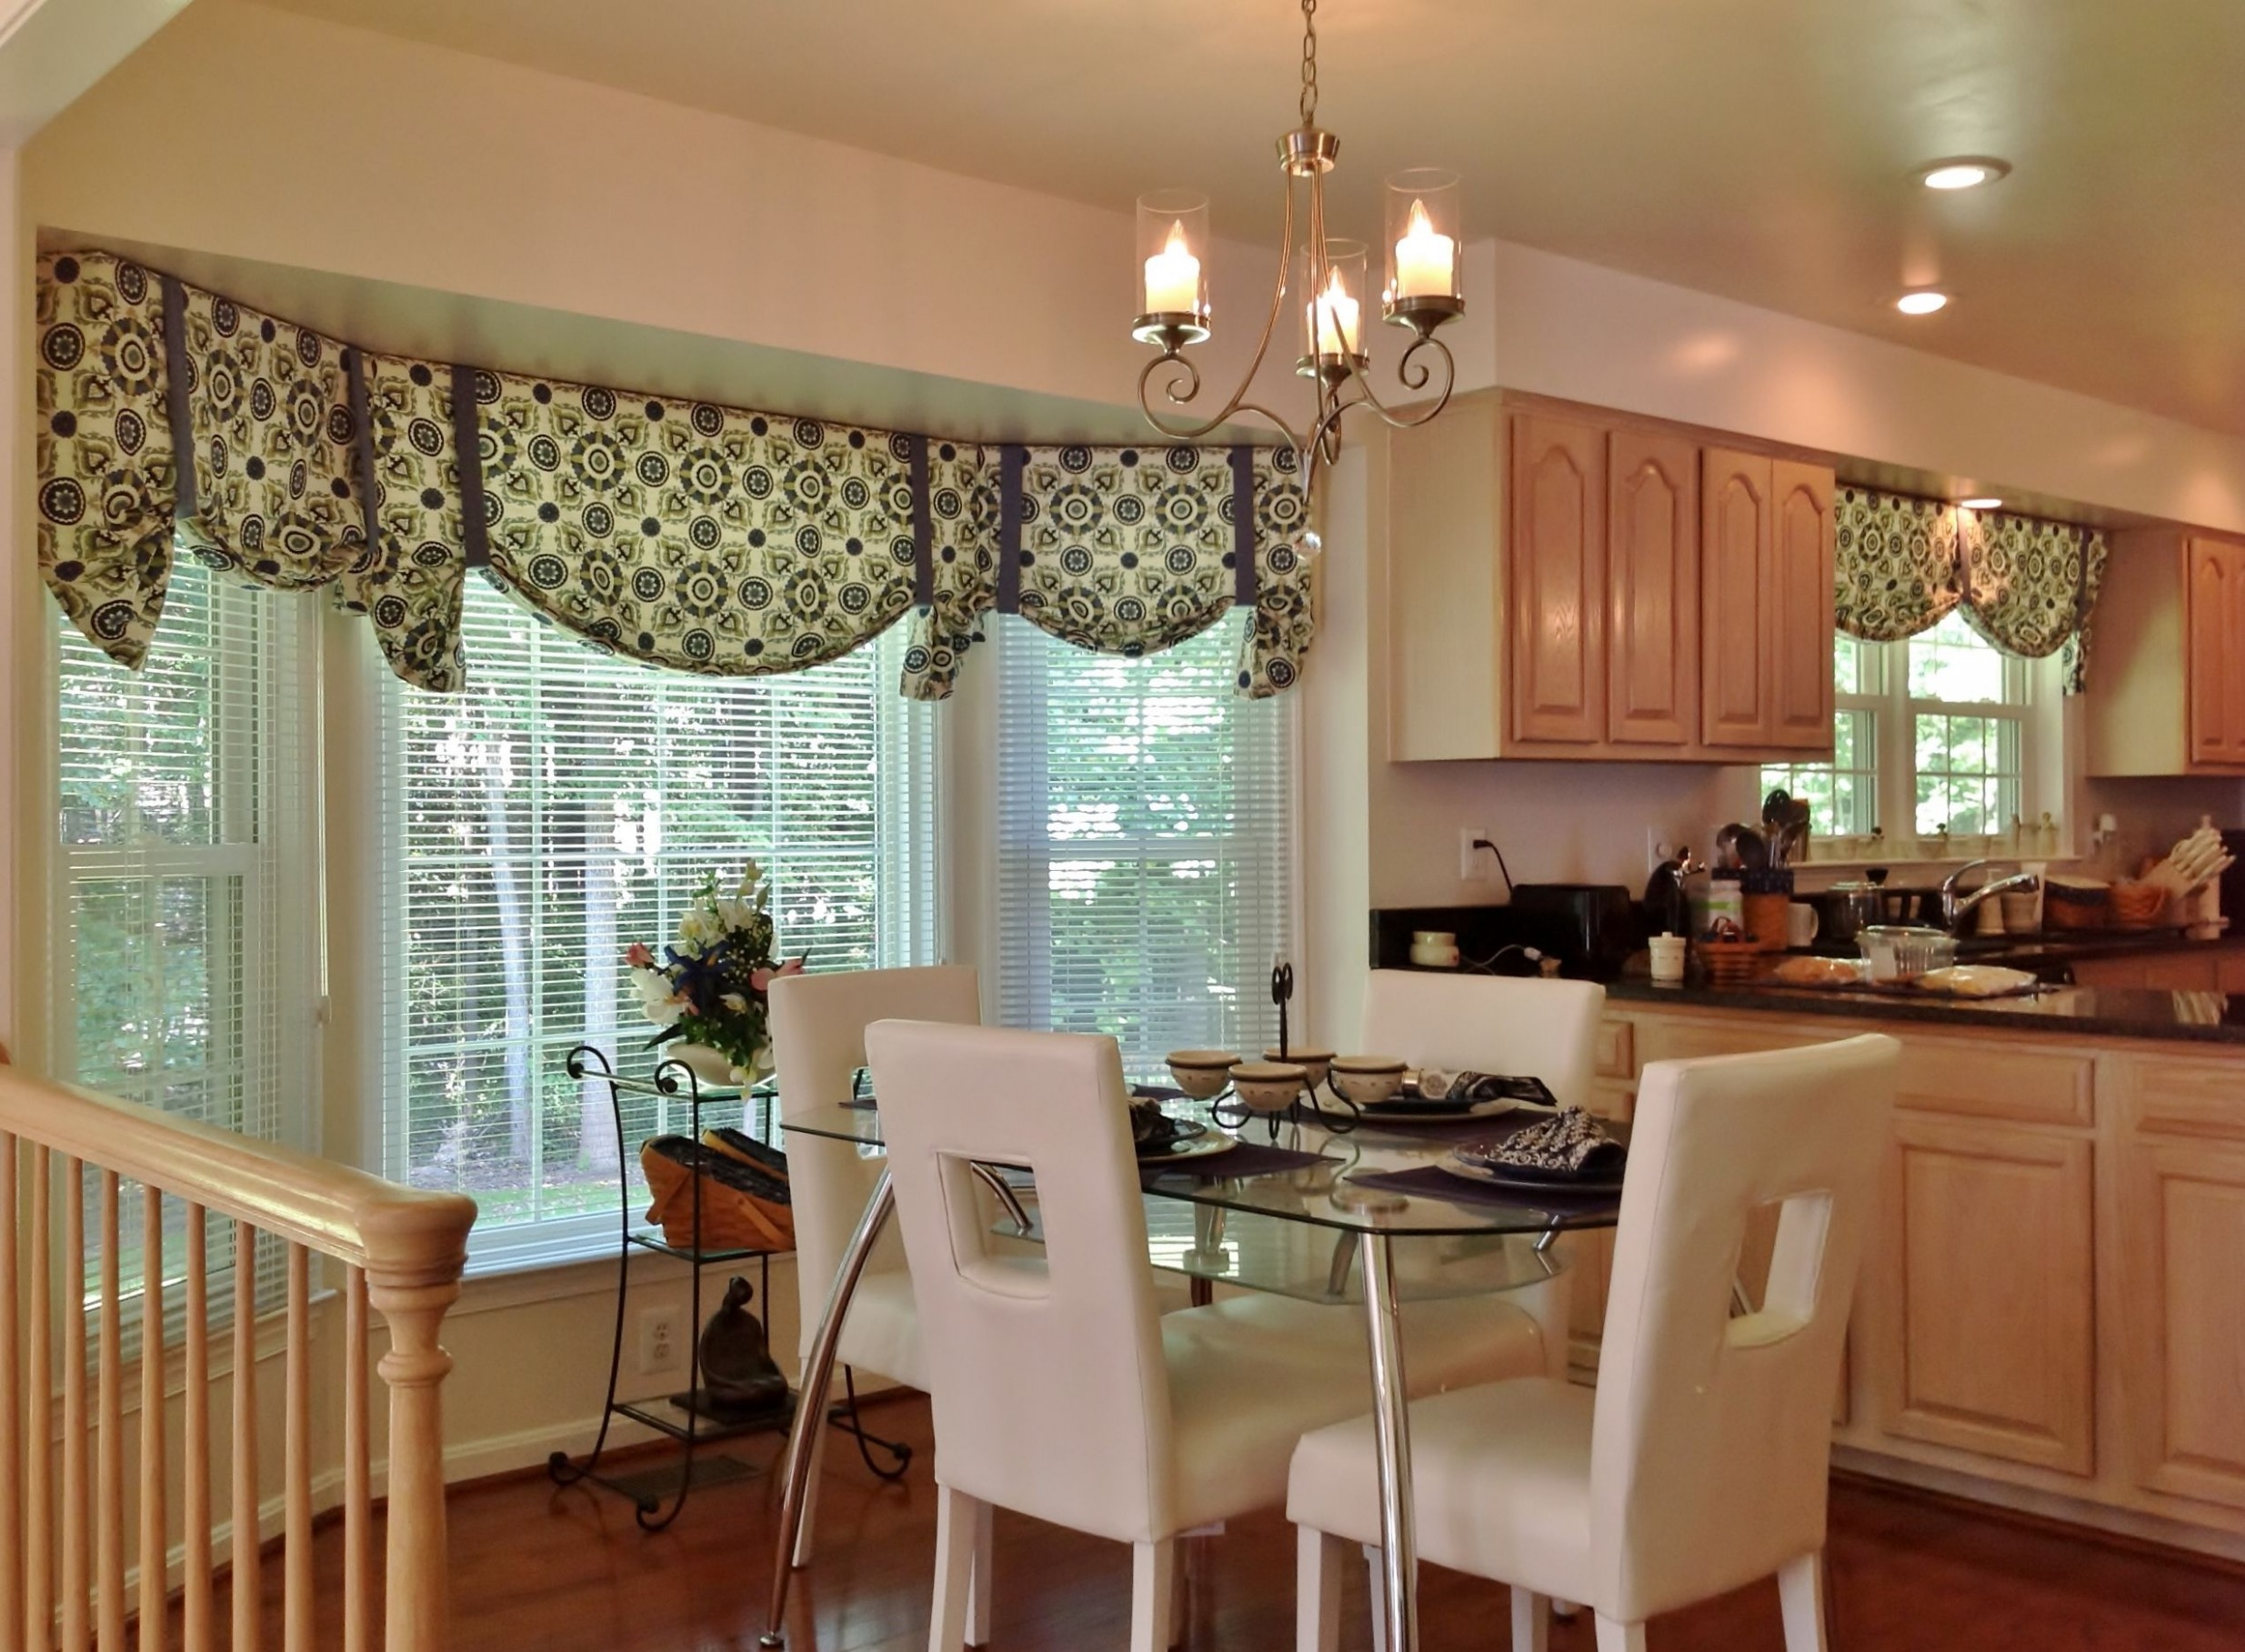 Bay Window Kitchen Curtains And Window Treatment Valance Ideas  - Dining Room Valance Ideas